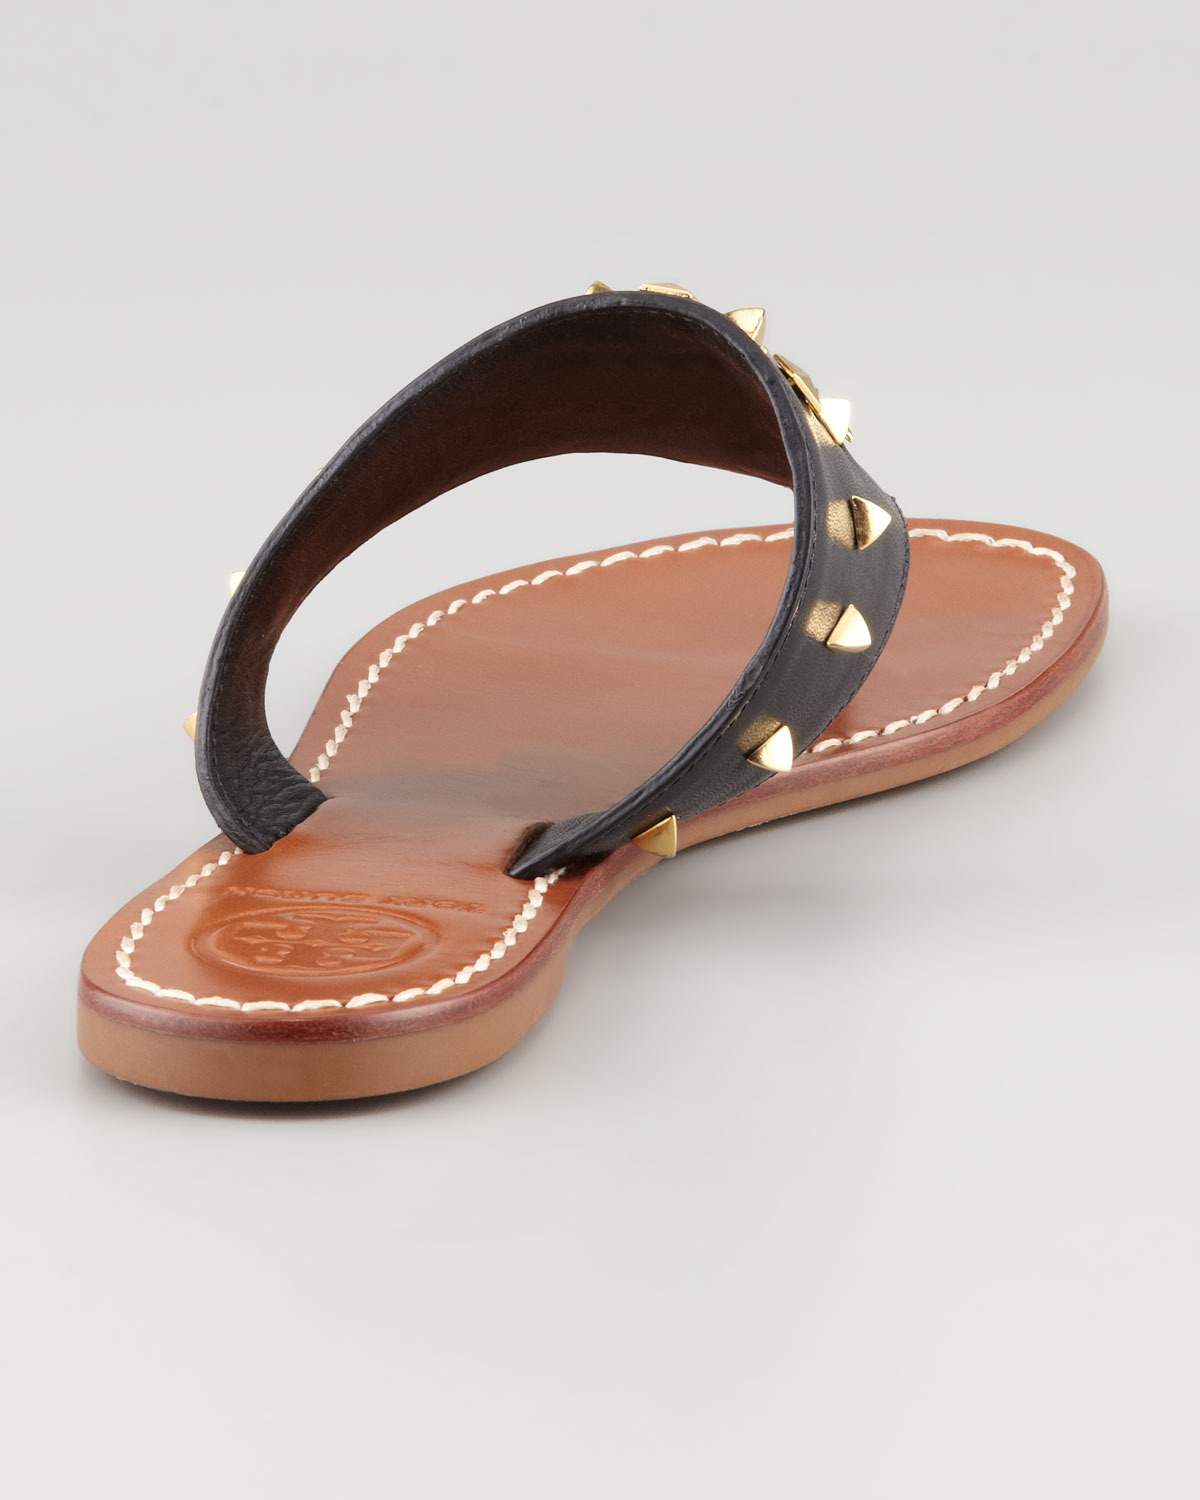 ef9028d007dd Lyst - Tory Burch Dale Studded Thong Sandal in Black